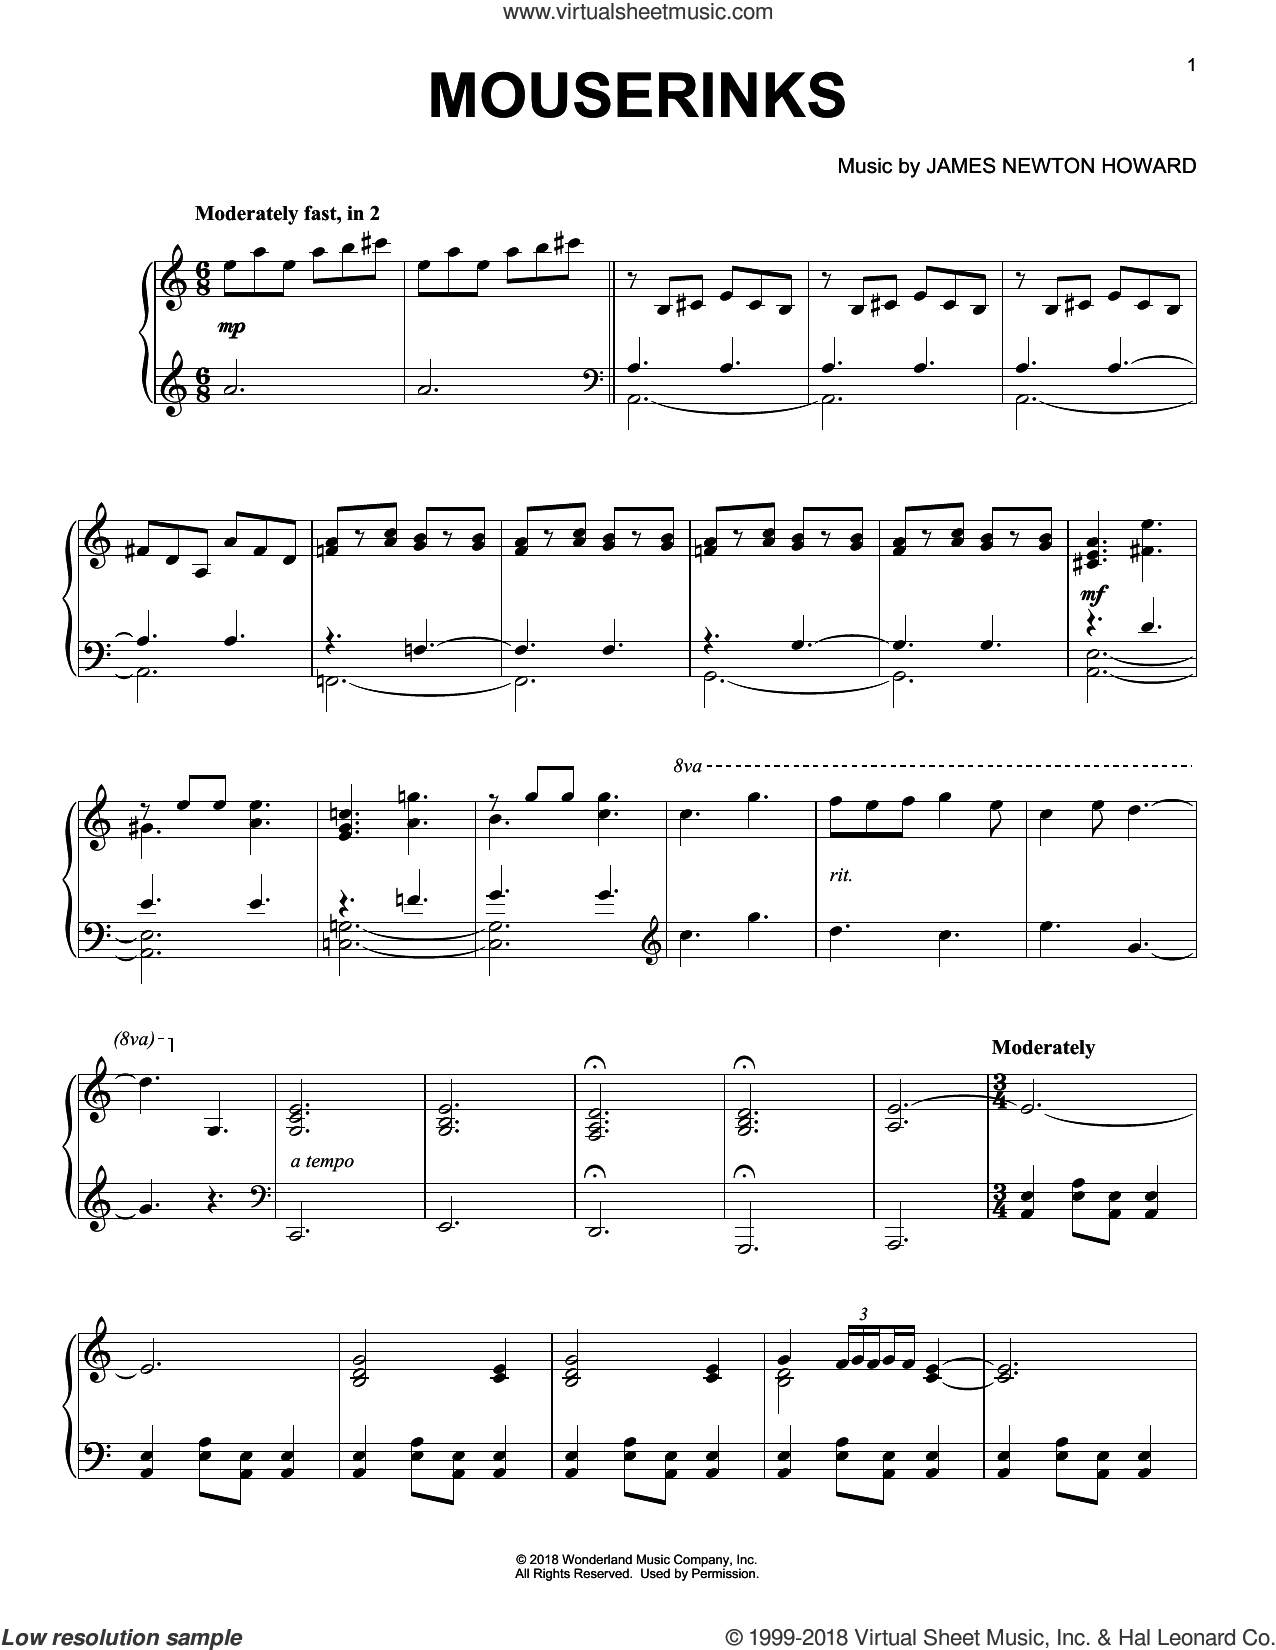 Mouserinks (from The Nutcracker and The Four Realms) sheet music for piano solo by Pyotr Ilyich Tchaikovsky and James Newton Howard, intermediate skill level